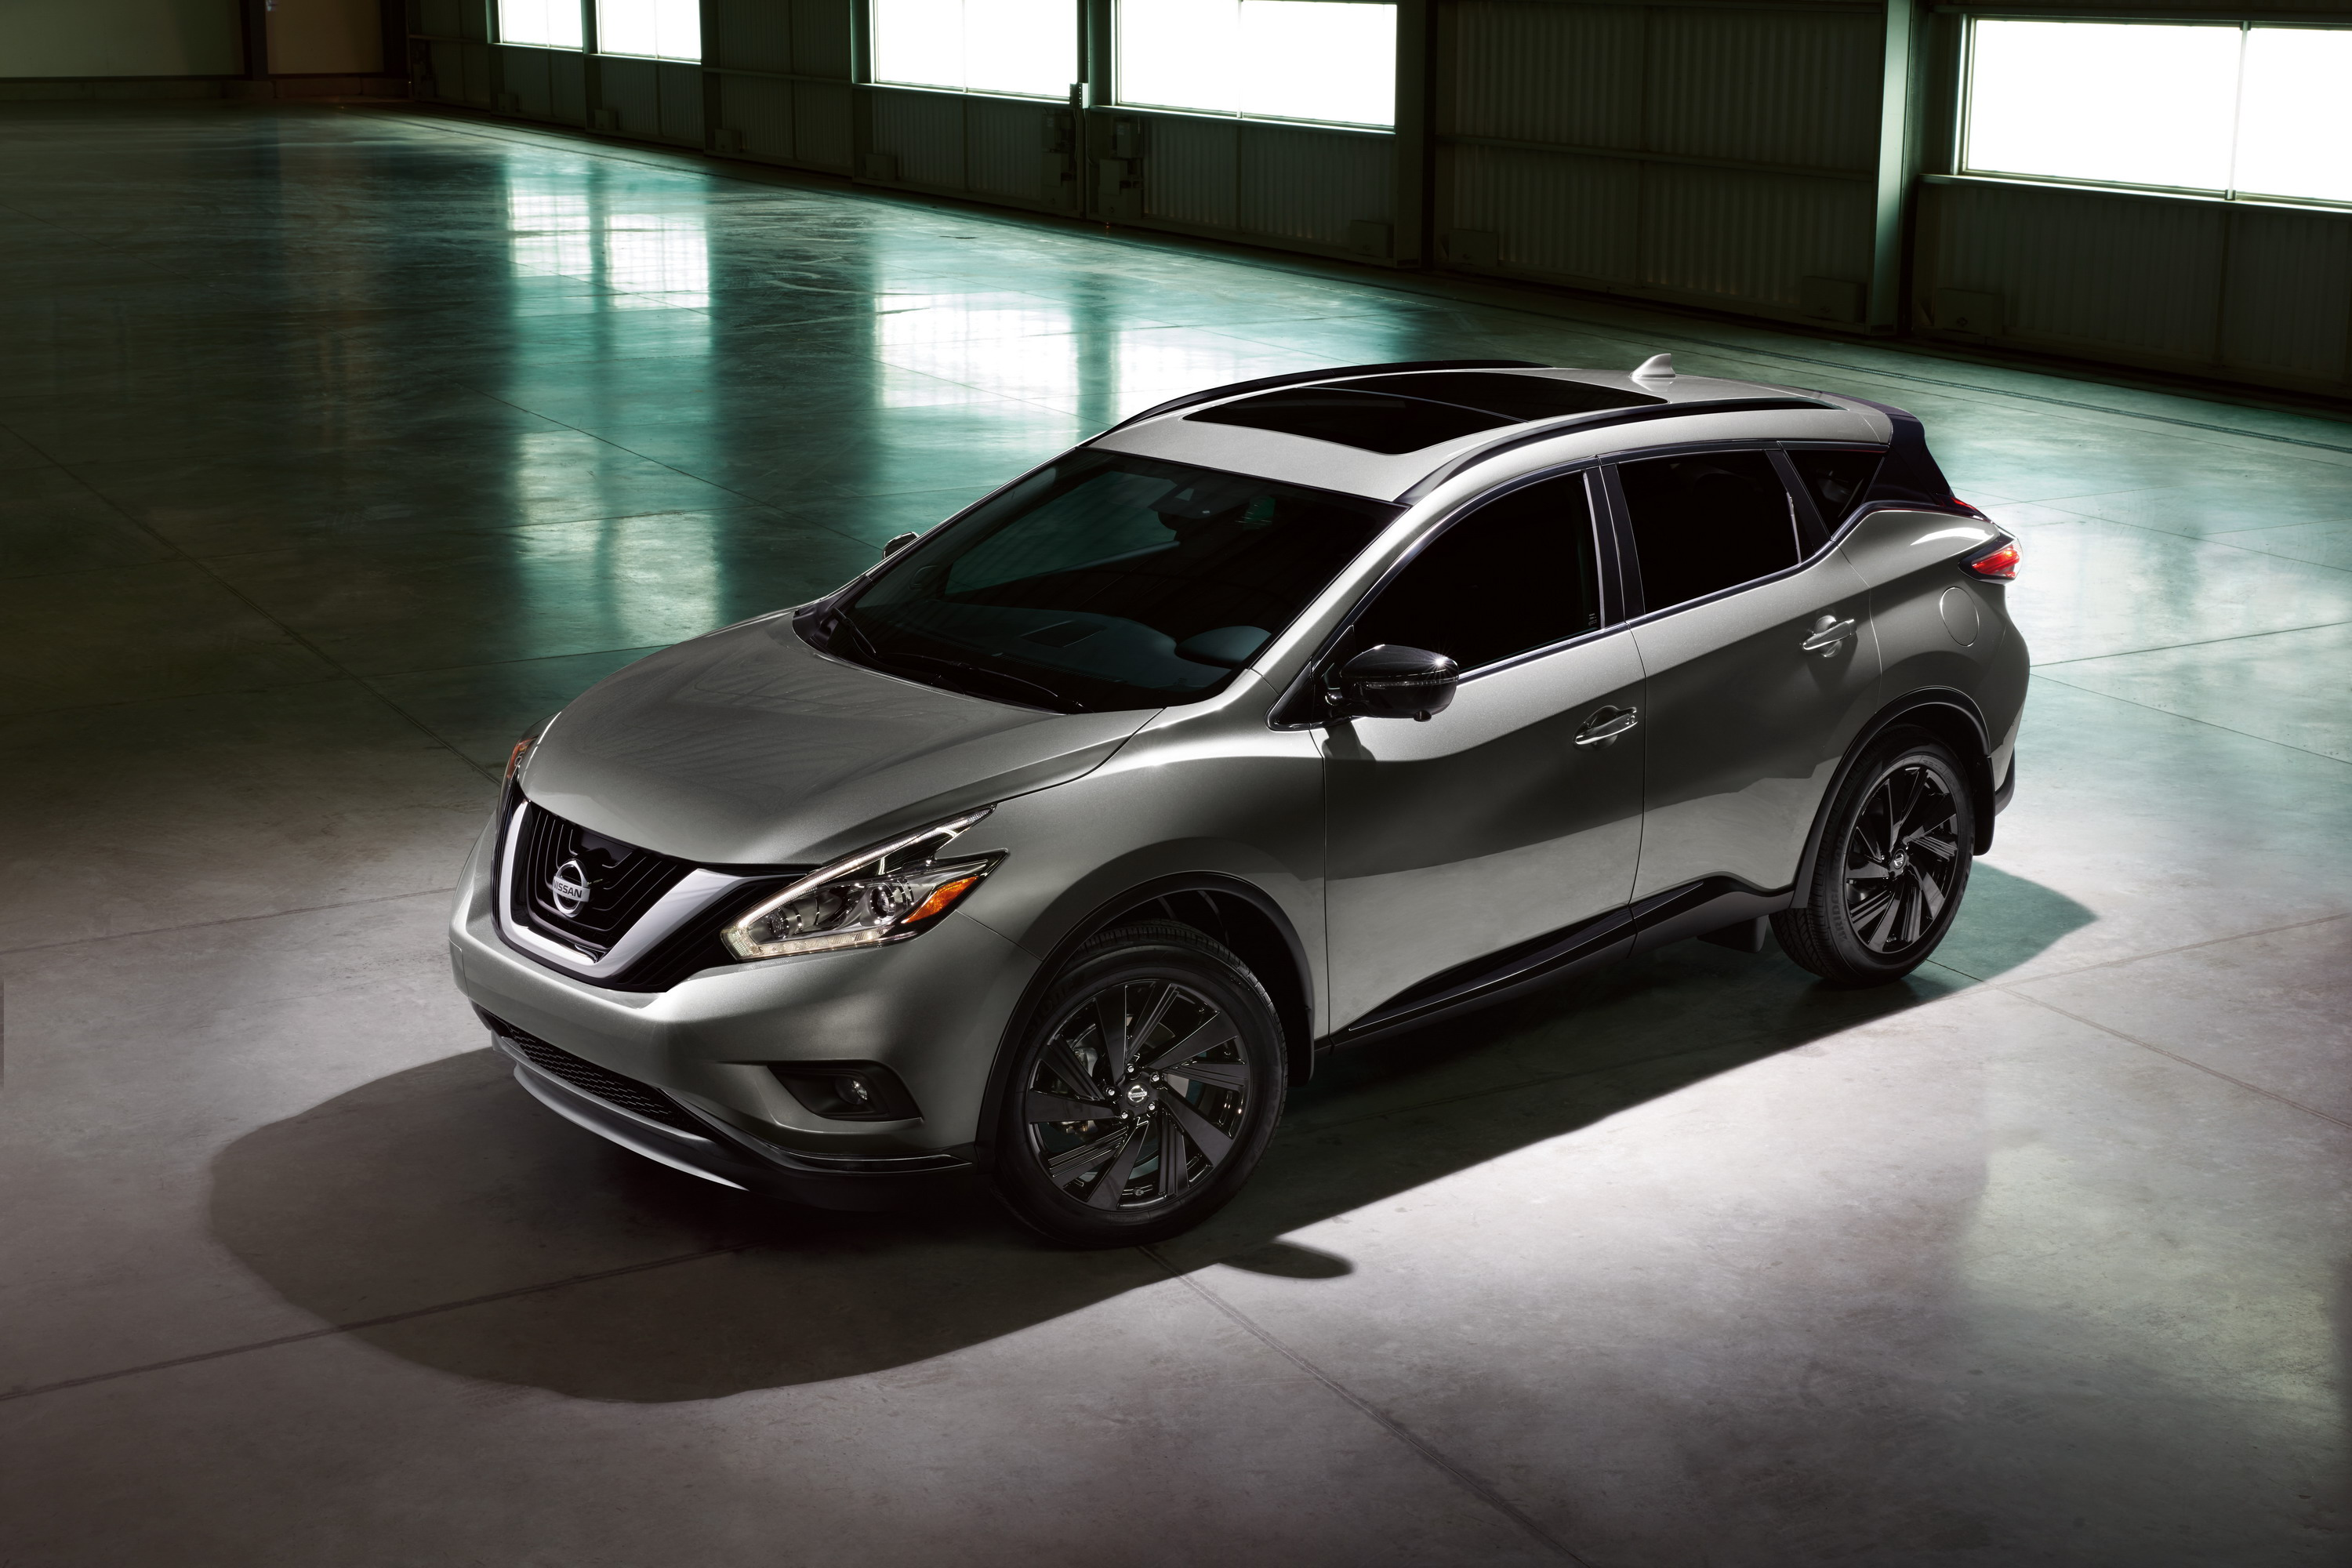 awd nissan review hd reviews ugly duckling price cars murano suave sl wallpapers